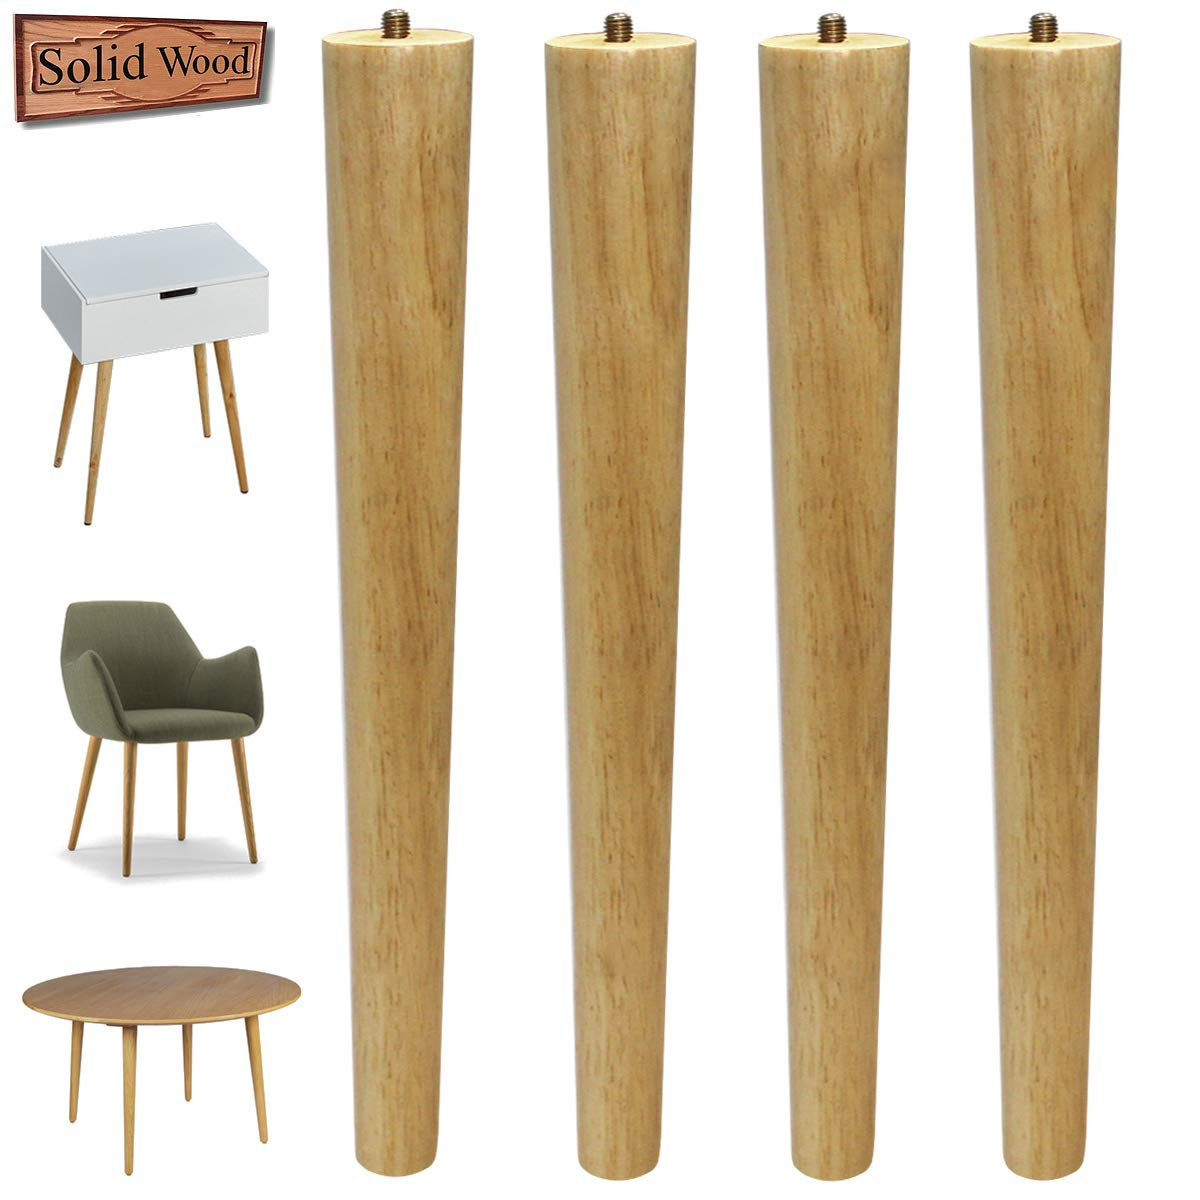 Table Legs 16 inch Wood Furniture Legs for Coffee Table End Table Mid-Century Modern DIY Furniture Tapered Natural Threaded 5/16'' Hanger Bolts Pack of 4